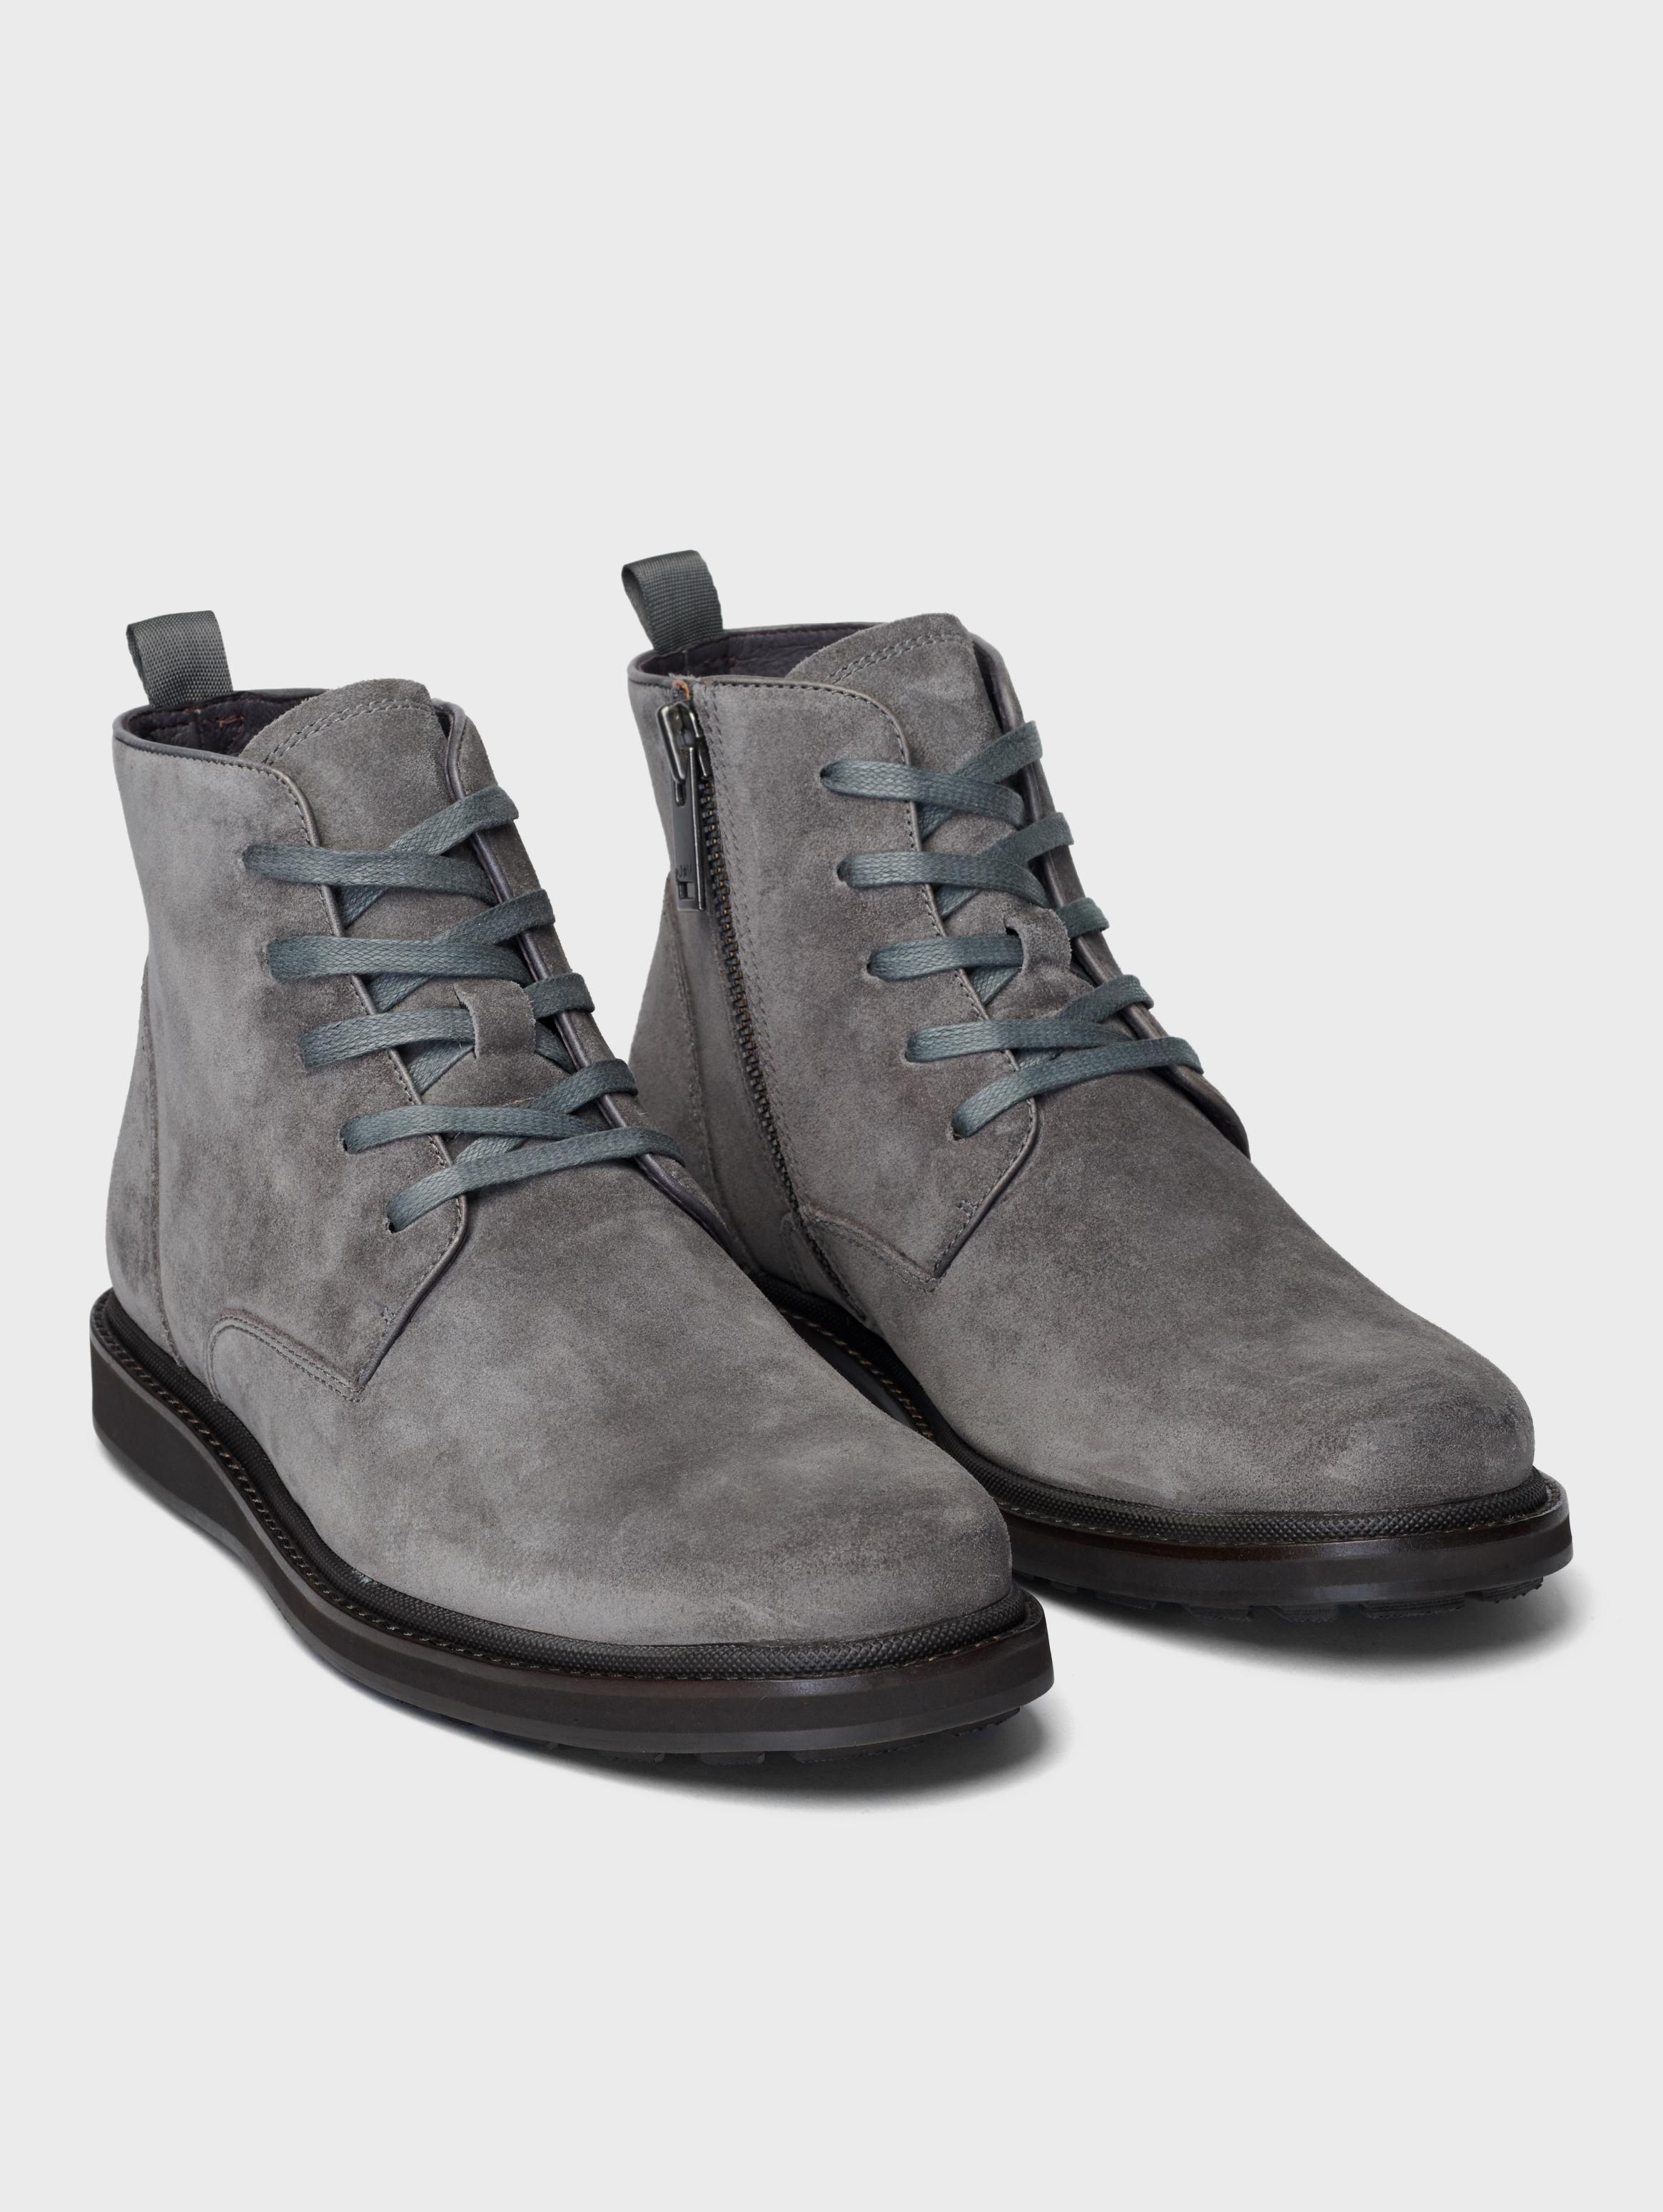 John Varvatos Brooklyn Lug Lace Boots Blk Gry Twd